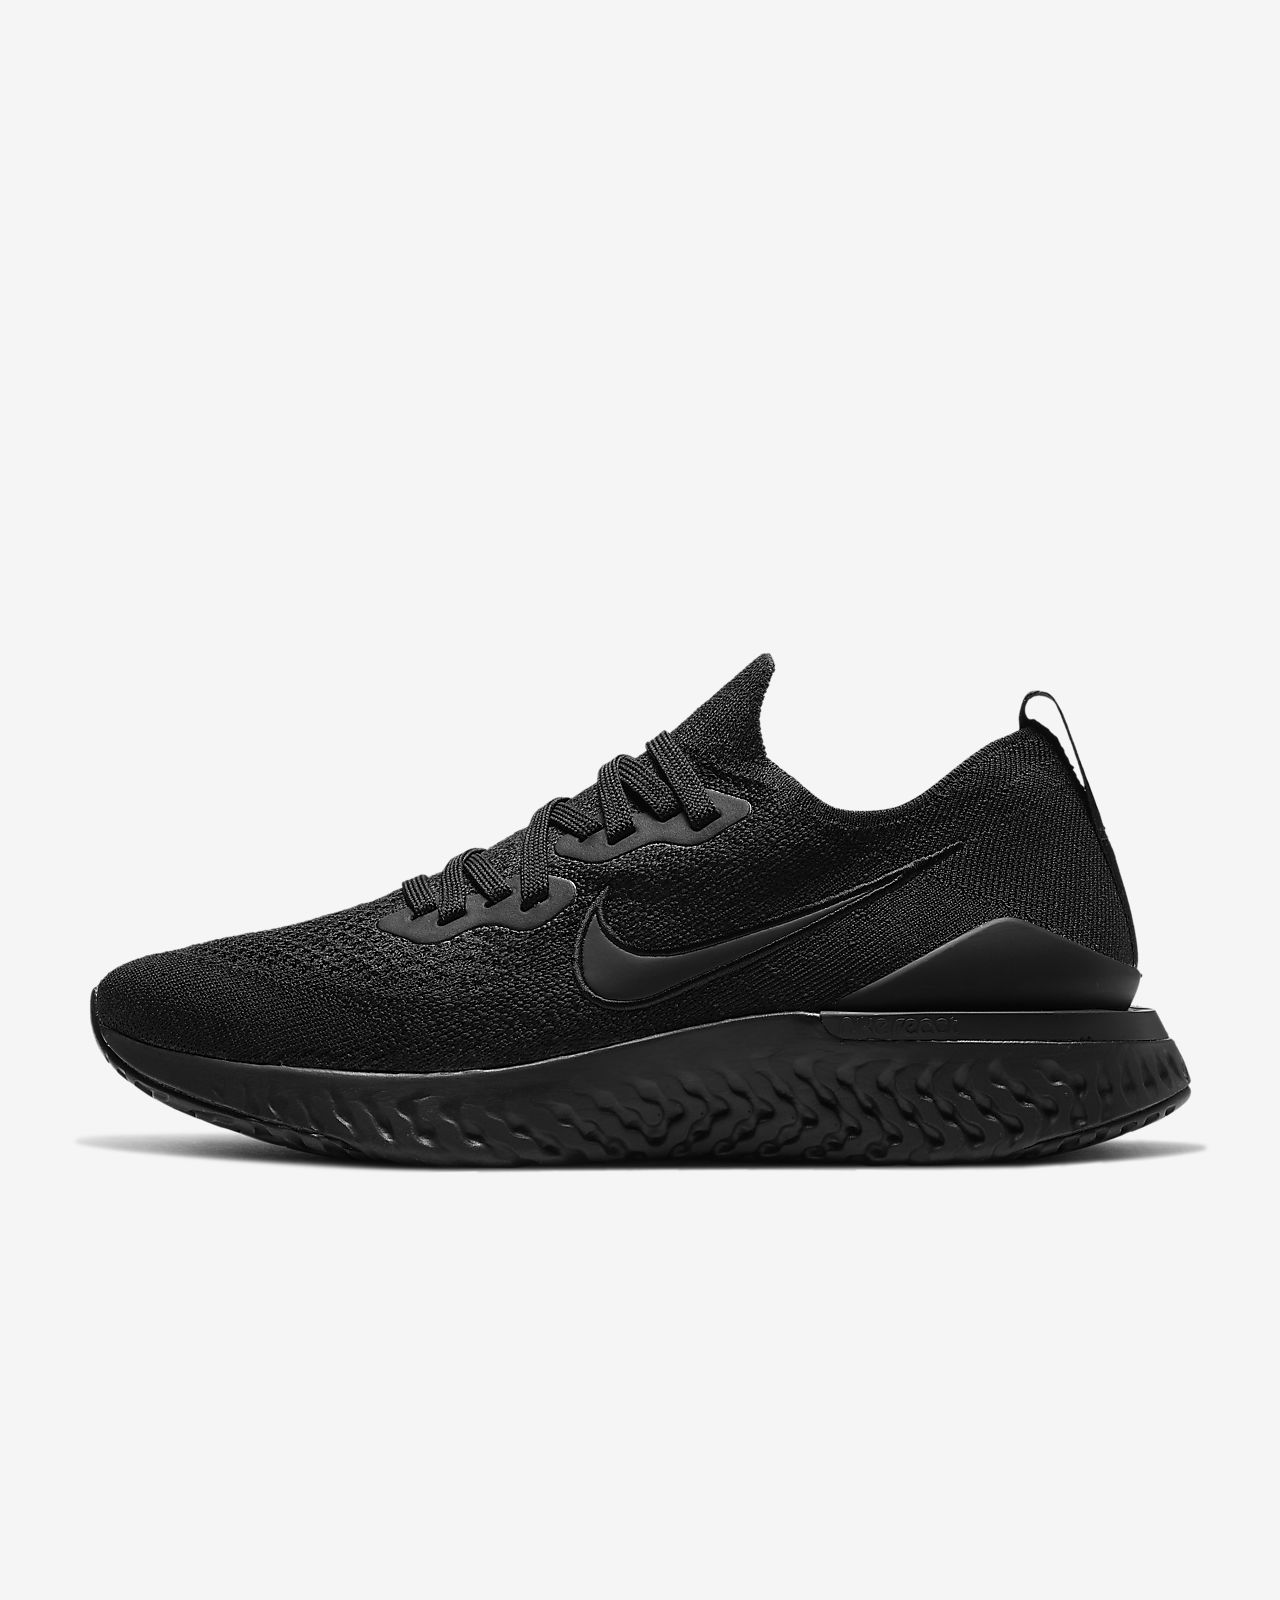 uk availability ad4bc d0350 ... Nike Epic React Flyknit 2 Women s Running Shoe